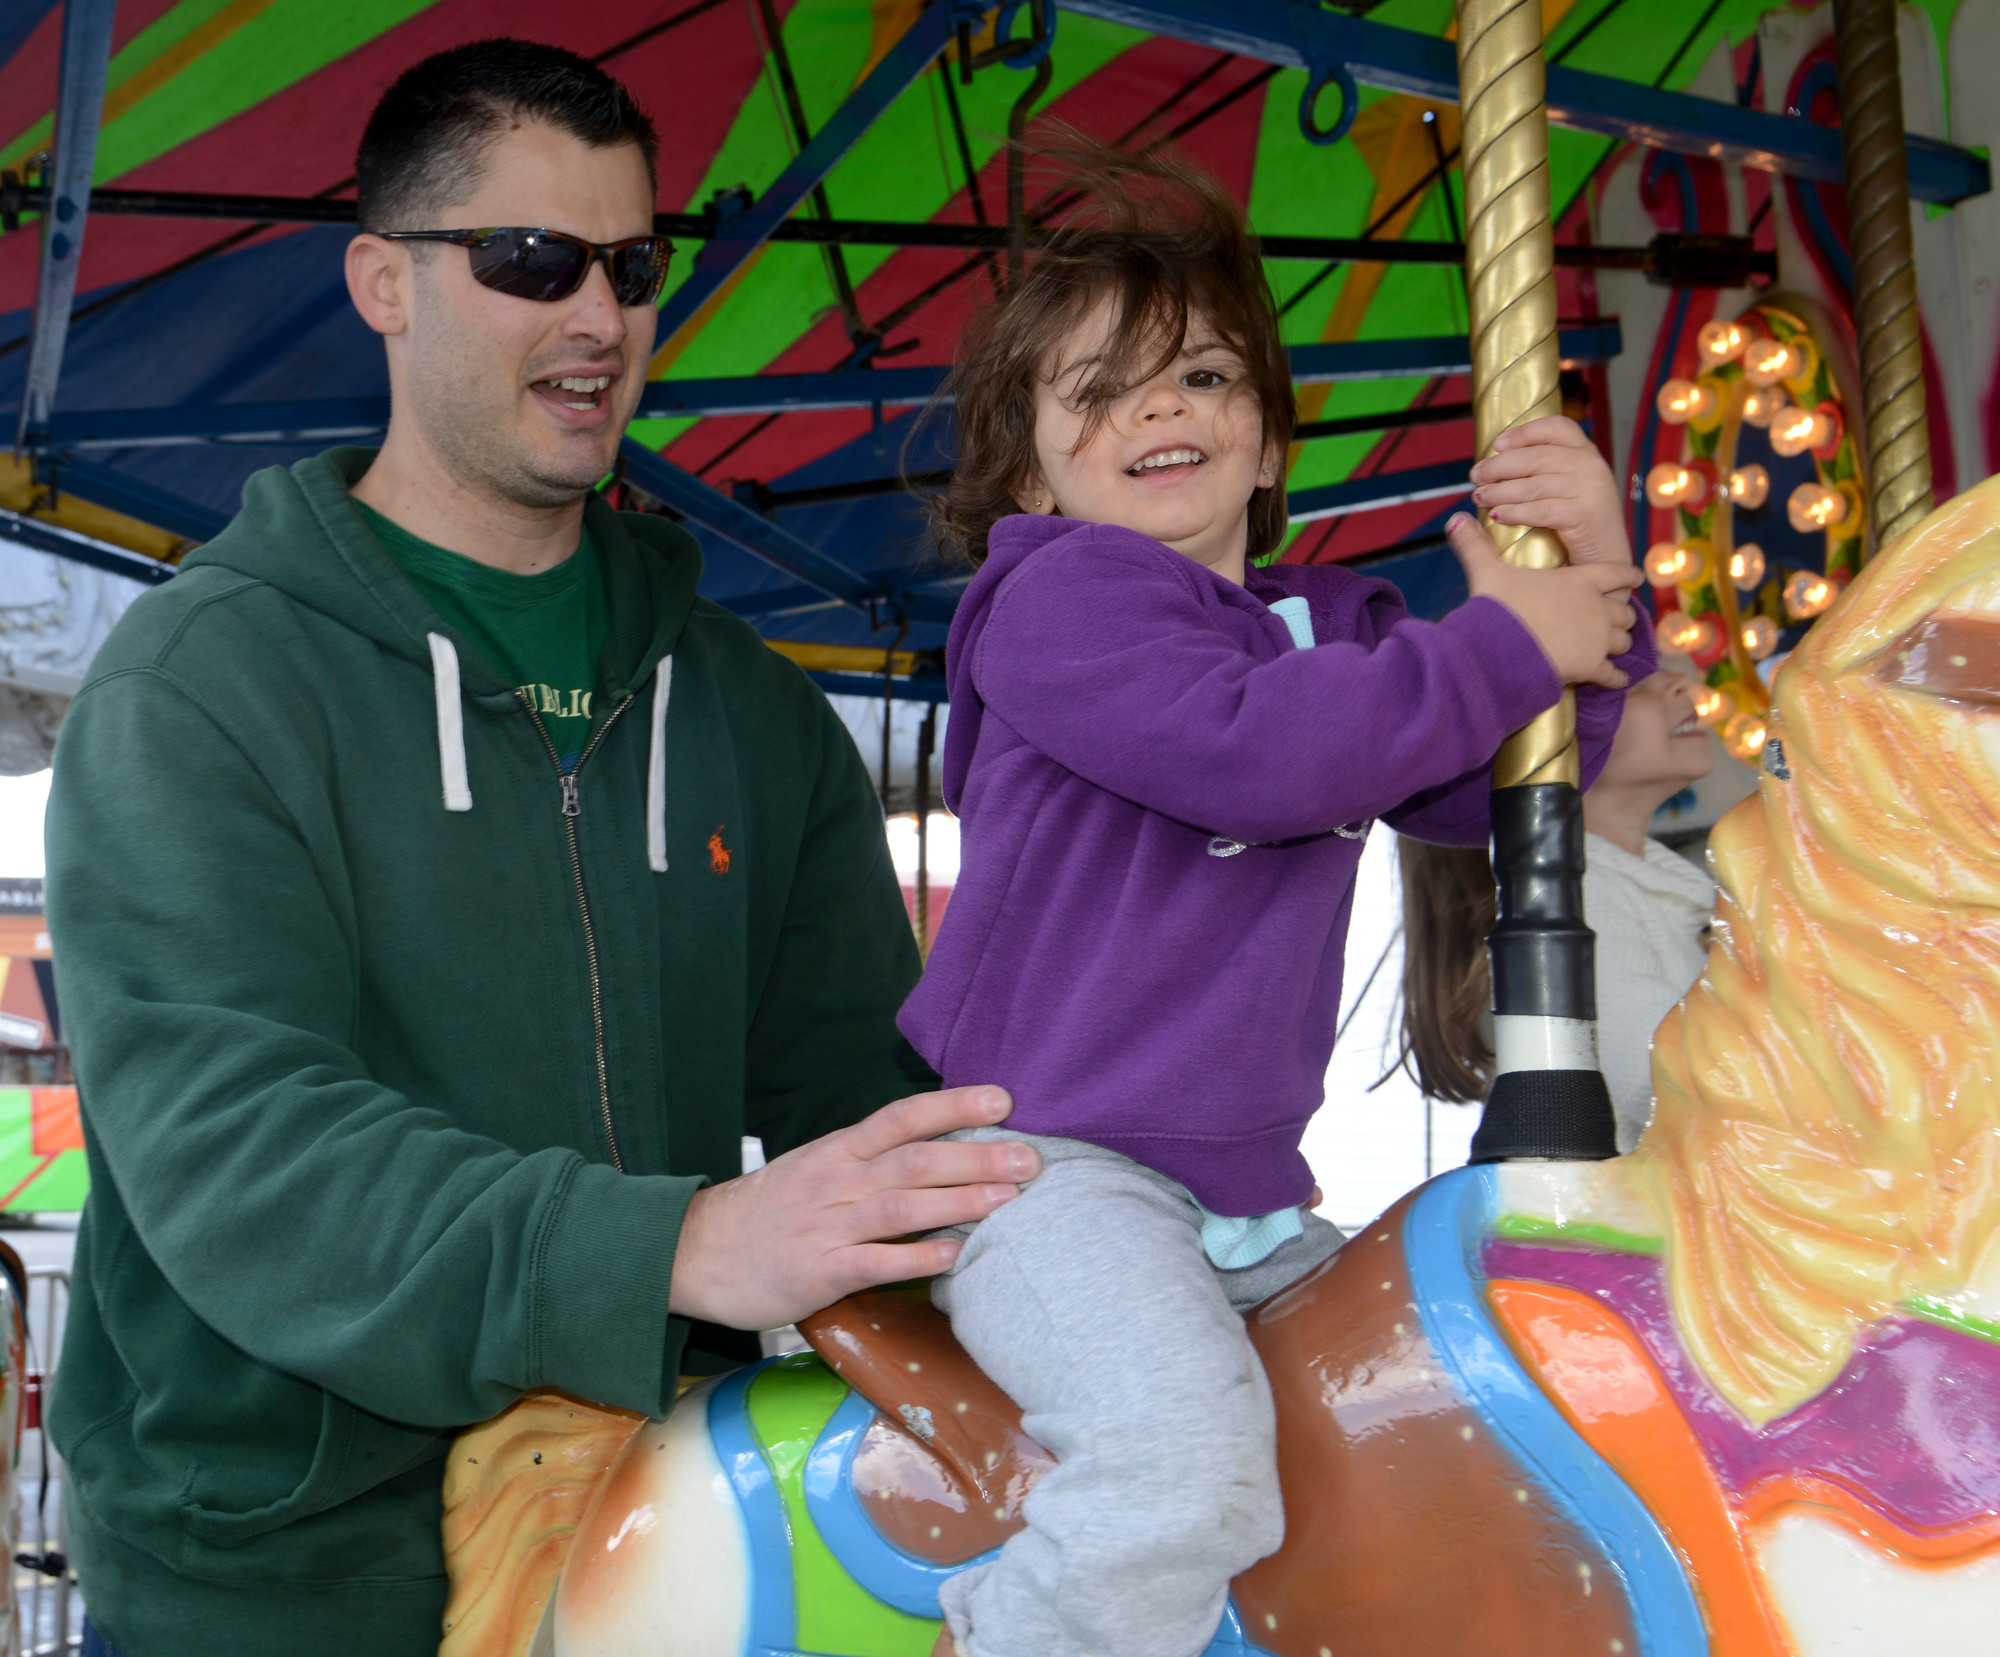 Nick Pecoraro gave his 2-year-old daughter, Grace, a hand on the merry-go-round at Kids Festival. The event serves as a scholarship fundraiser.